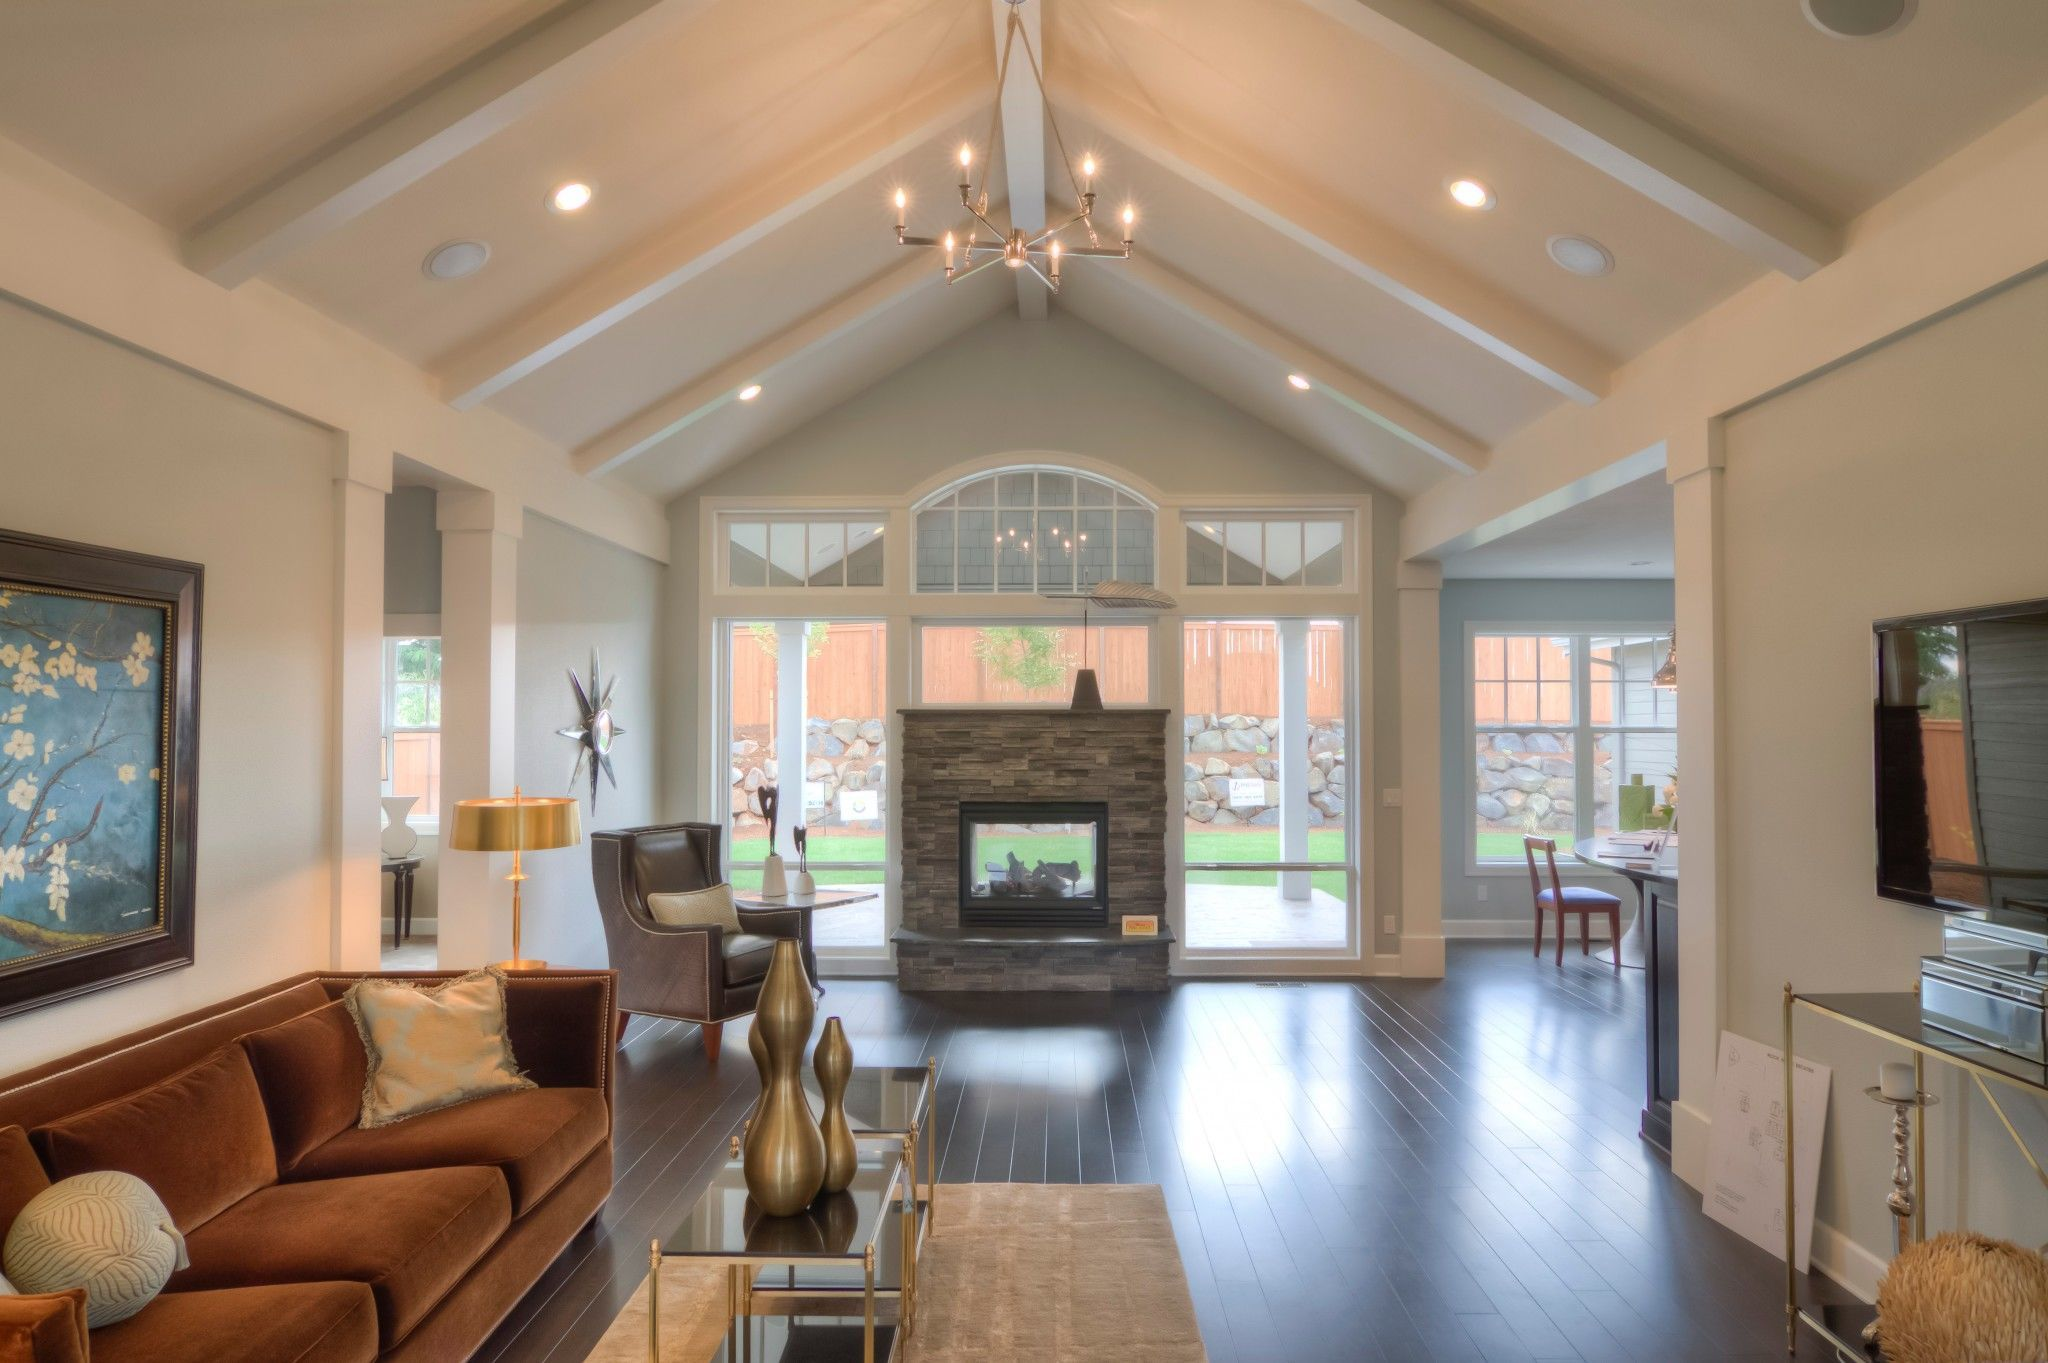 Love The Ceiling In This Great Room Greatrooms Homechanneltv Com High Ceiling Living Room Trendy Living Rooms Family Room Design